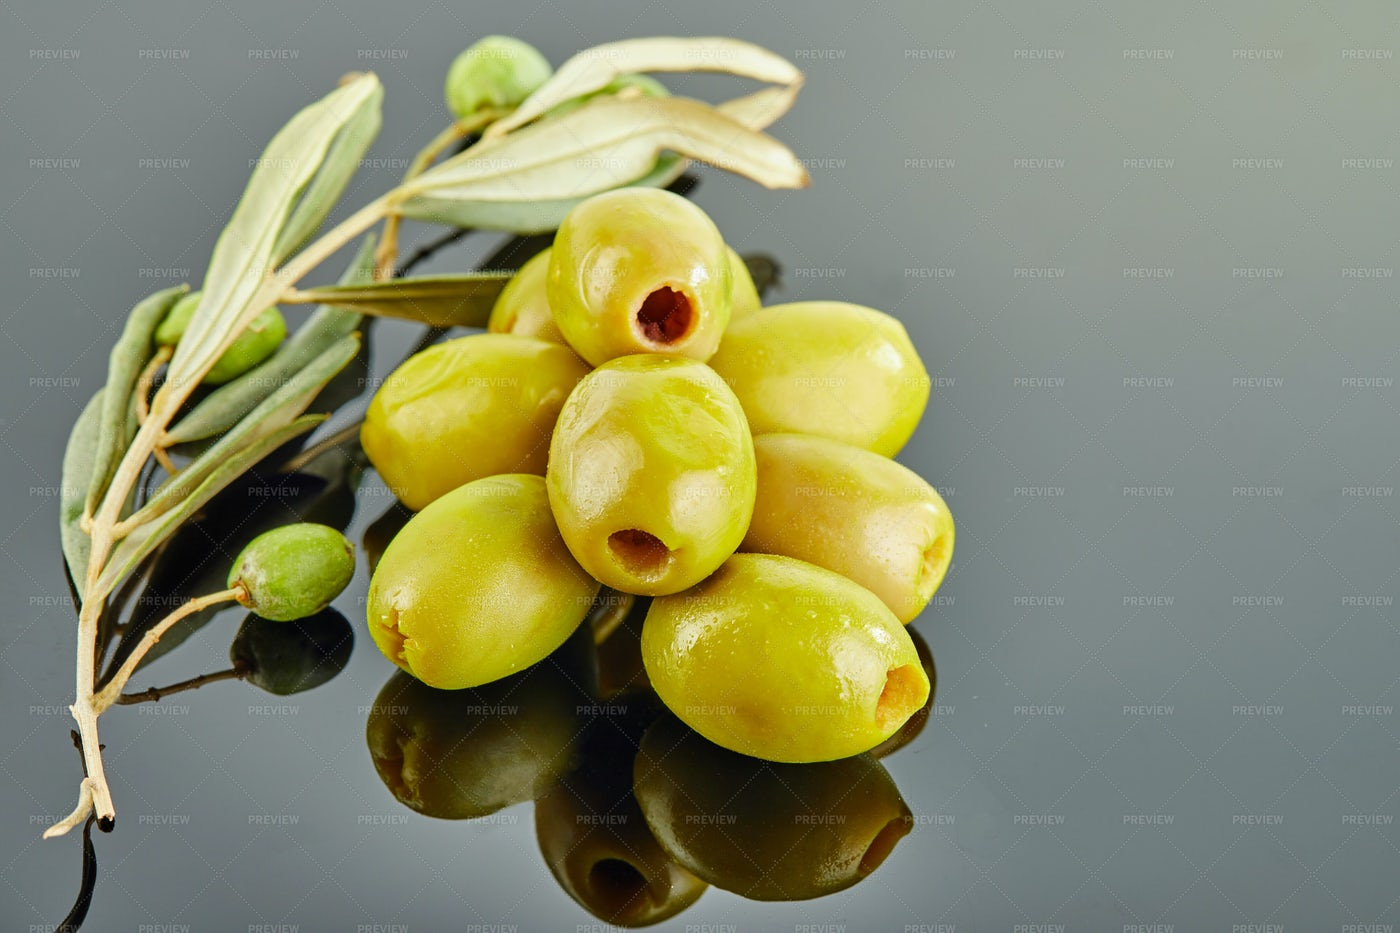 Olives With A Branch Of An Olive Tree: Stock Photos